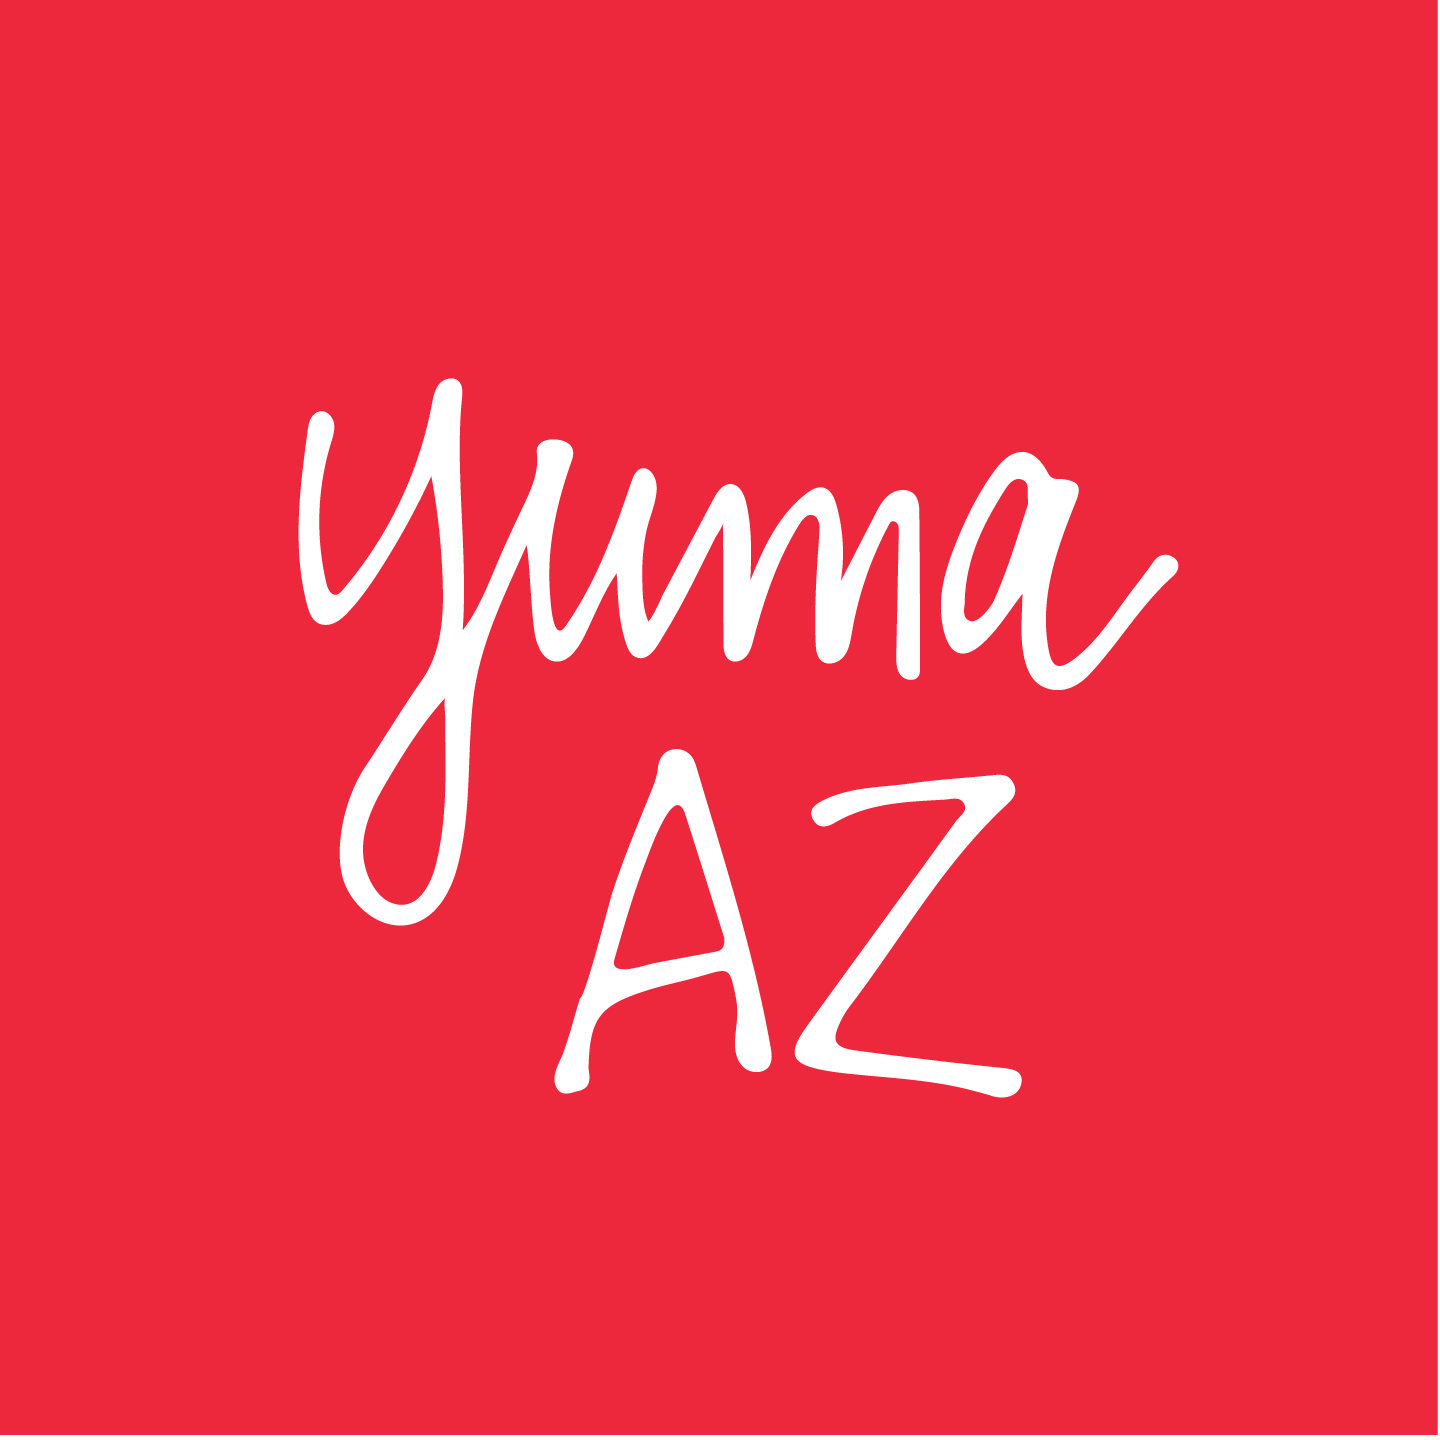 Yuma, AZ Mobile Tour Stop - November 20 – December 21, 2019